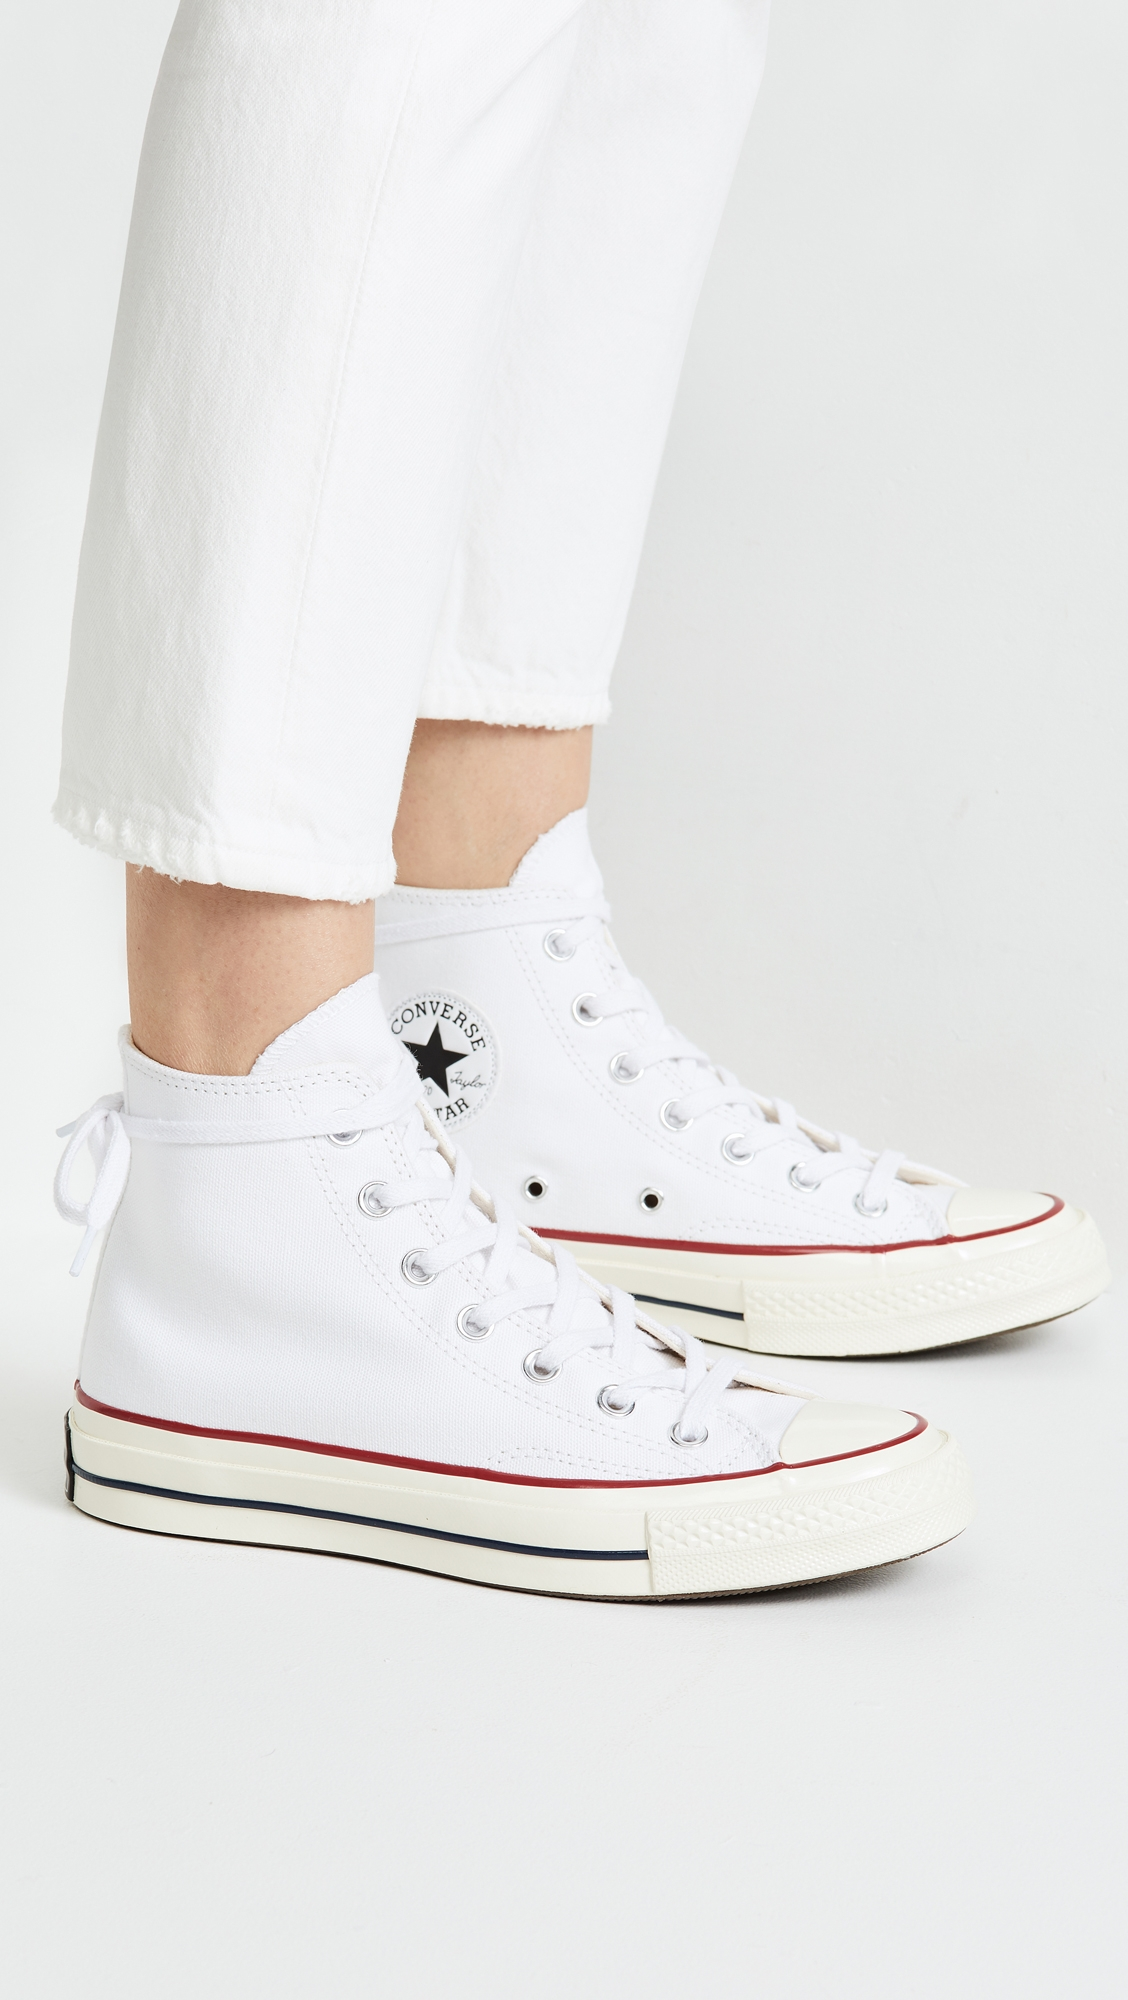 f00e365ec31 All Star '70s High Top Sneakers in 2019 | Products | Sneakers, High ...